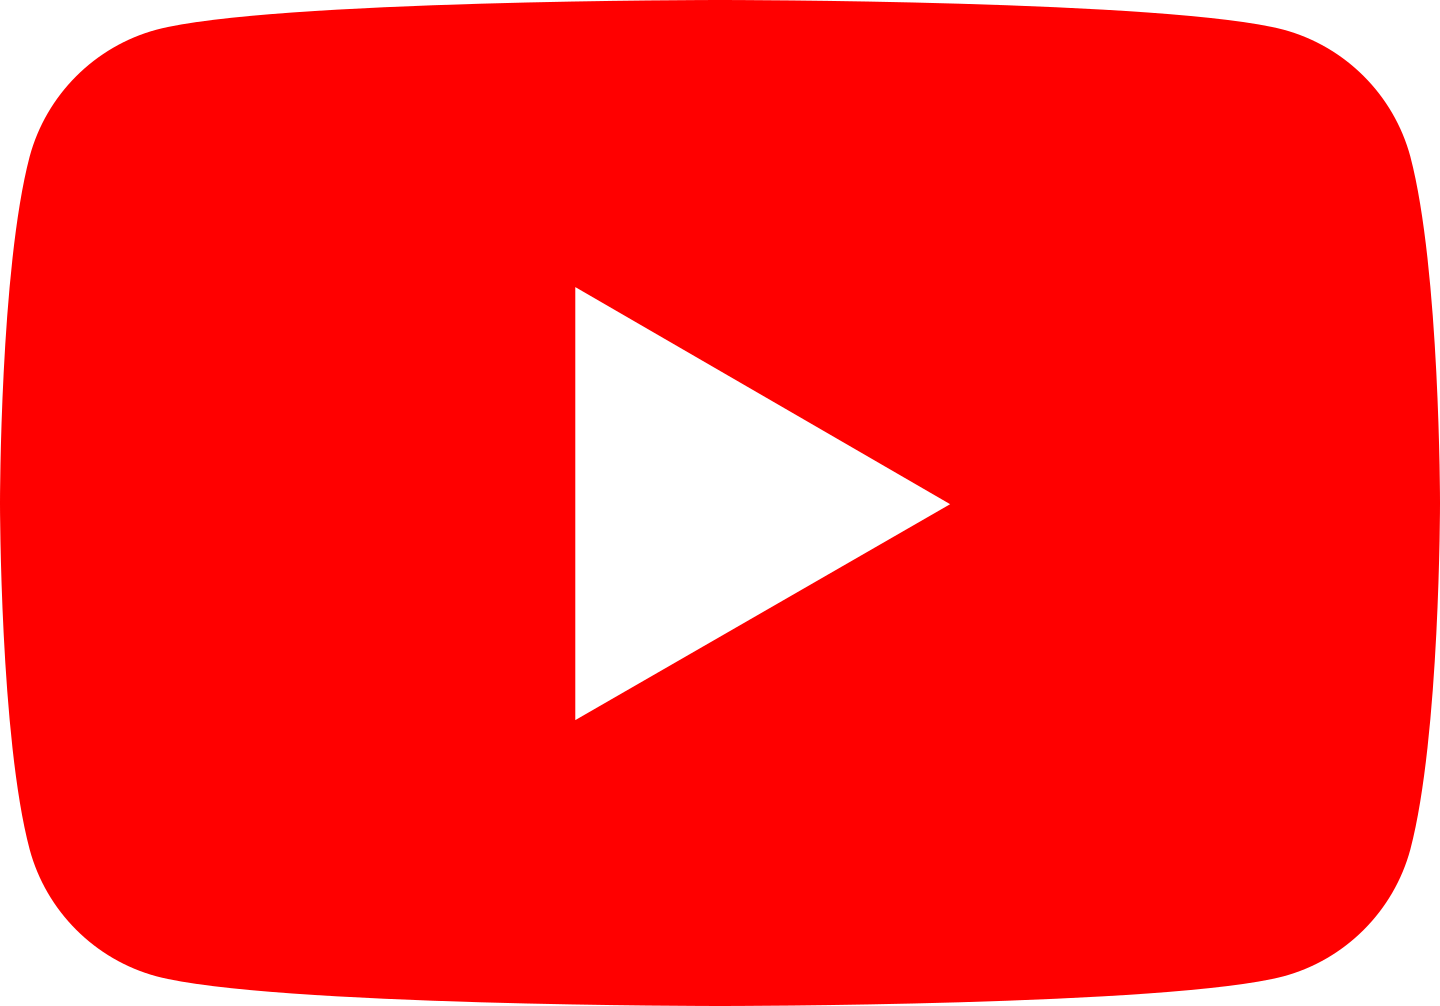 youtube logo 6 2 - YouTube Logo